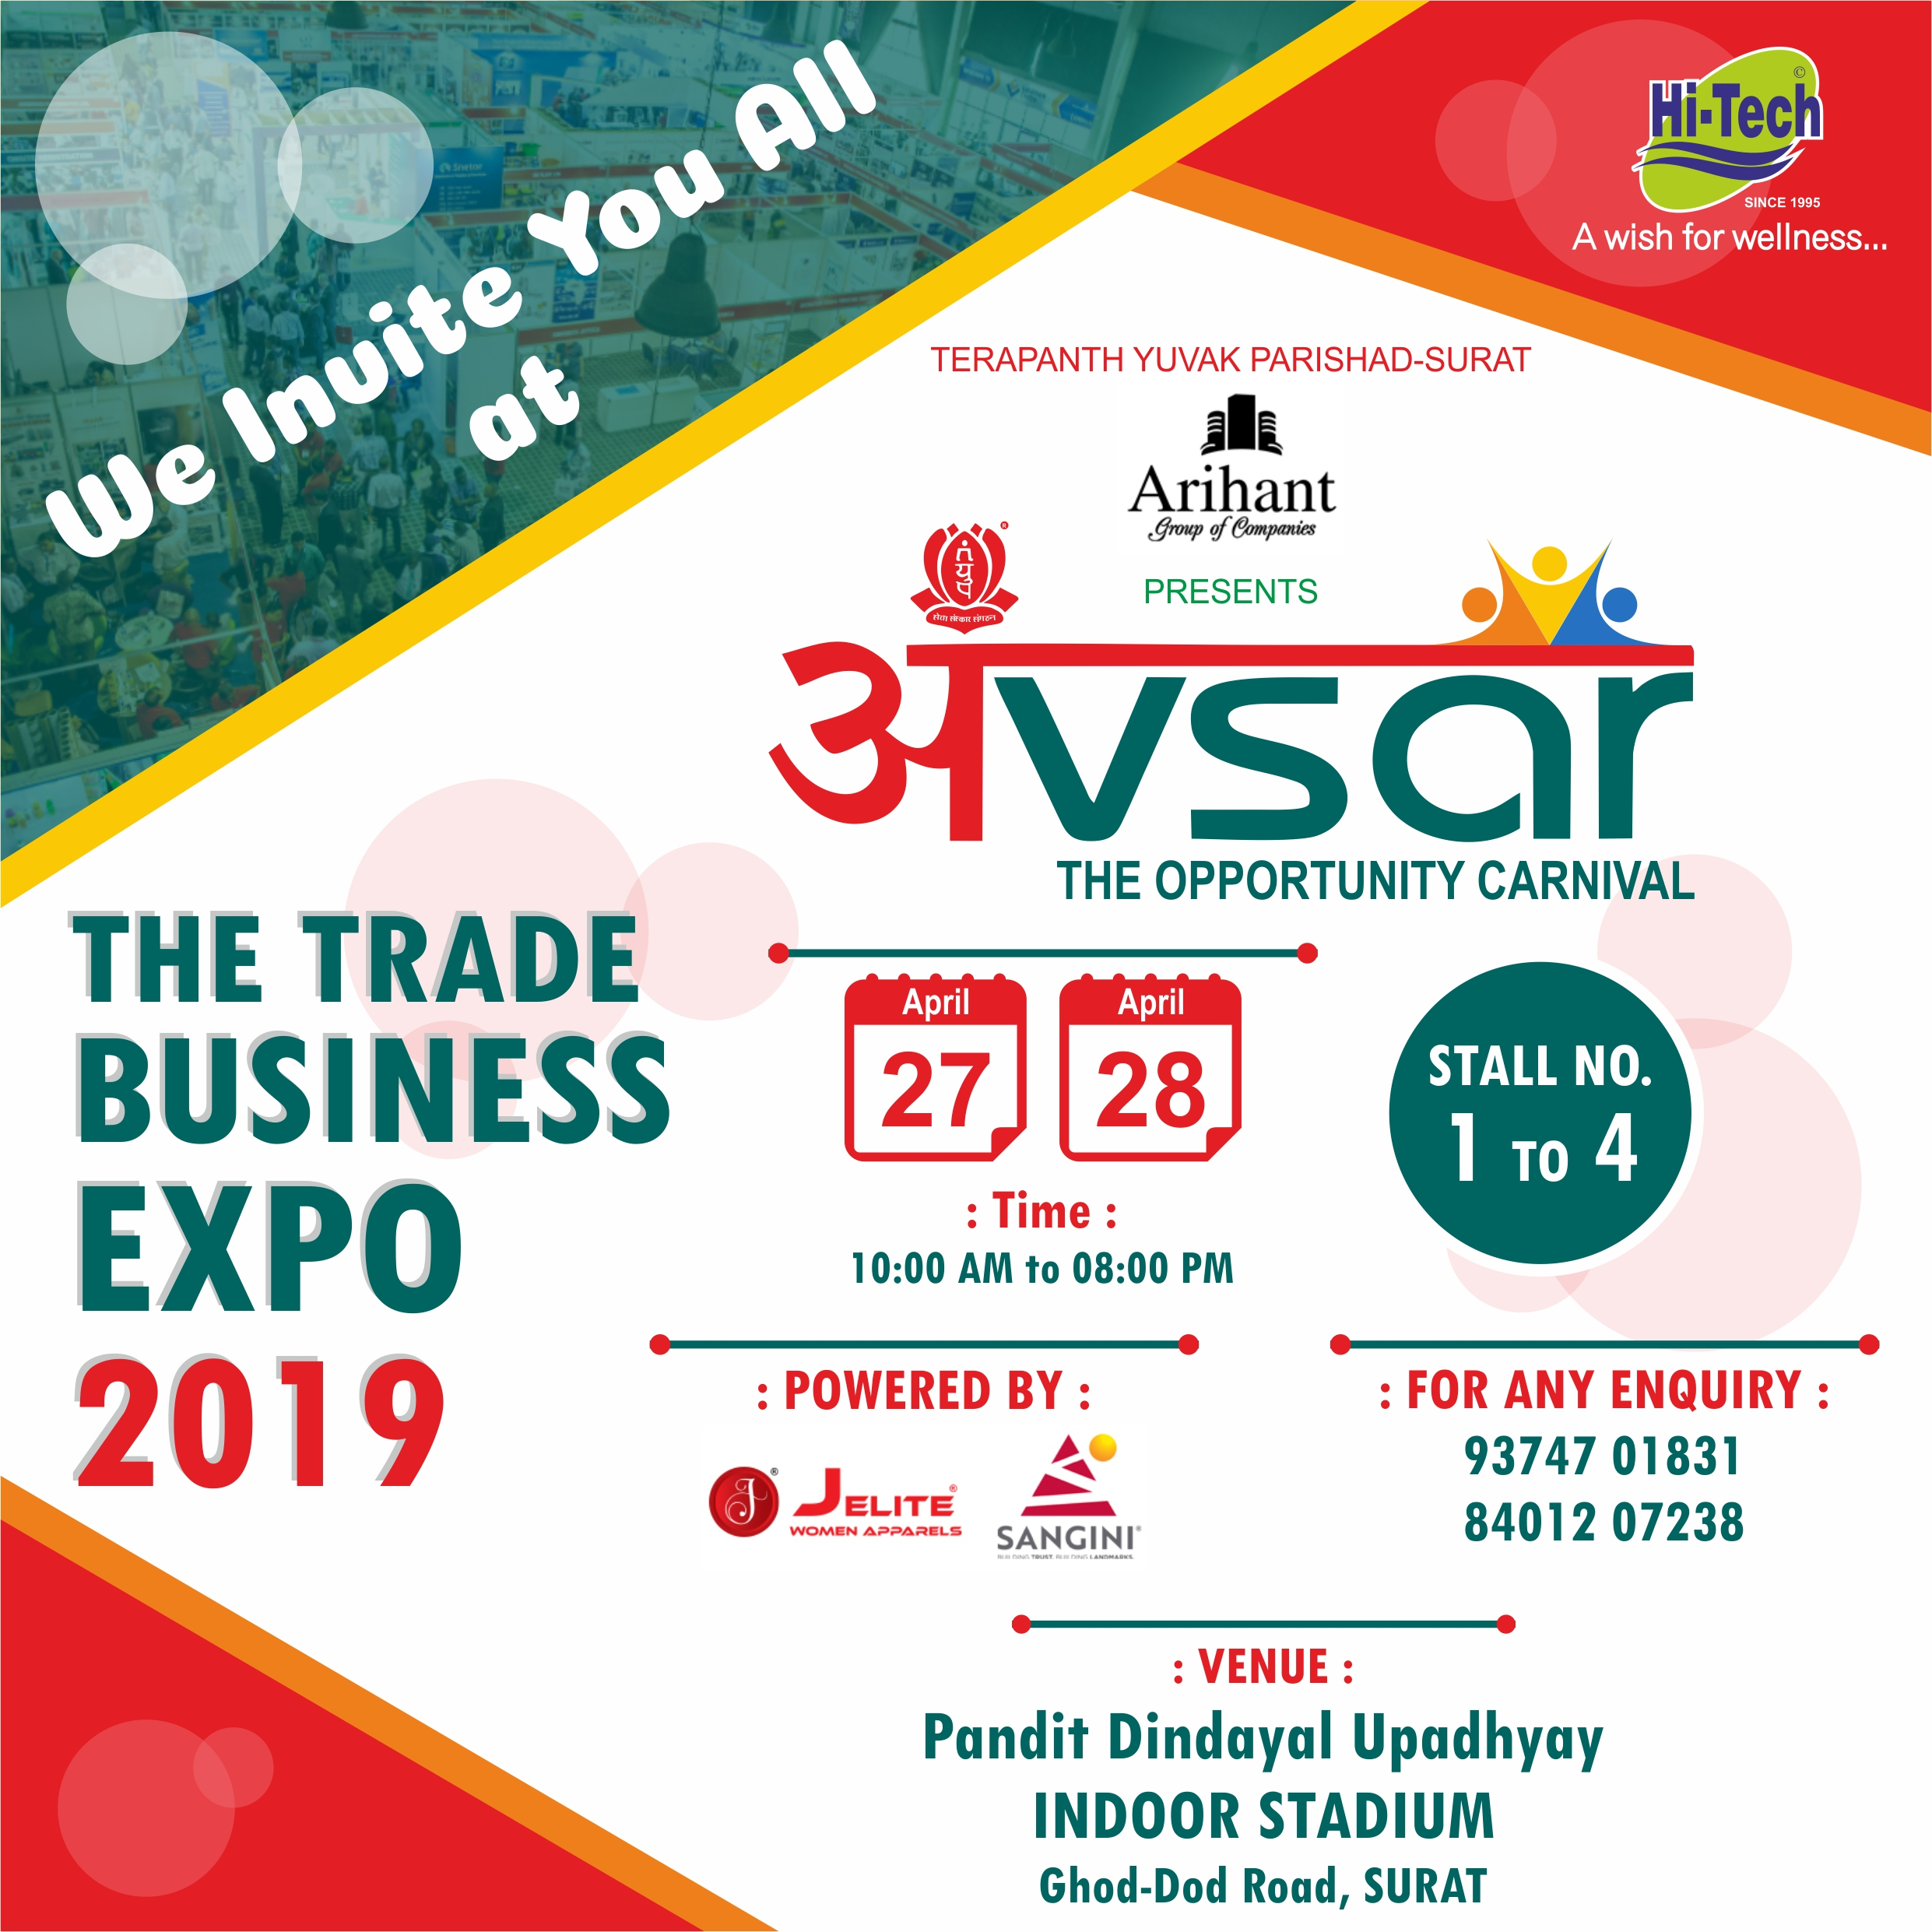 The Trade Business EXPO Avsar